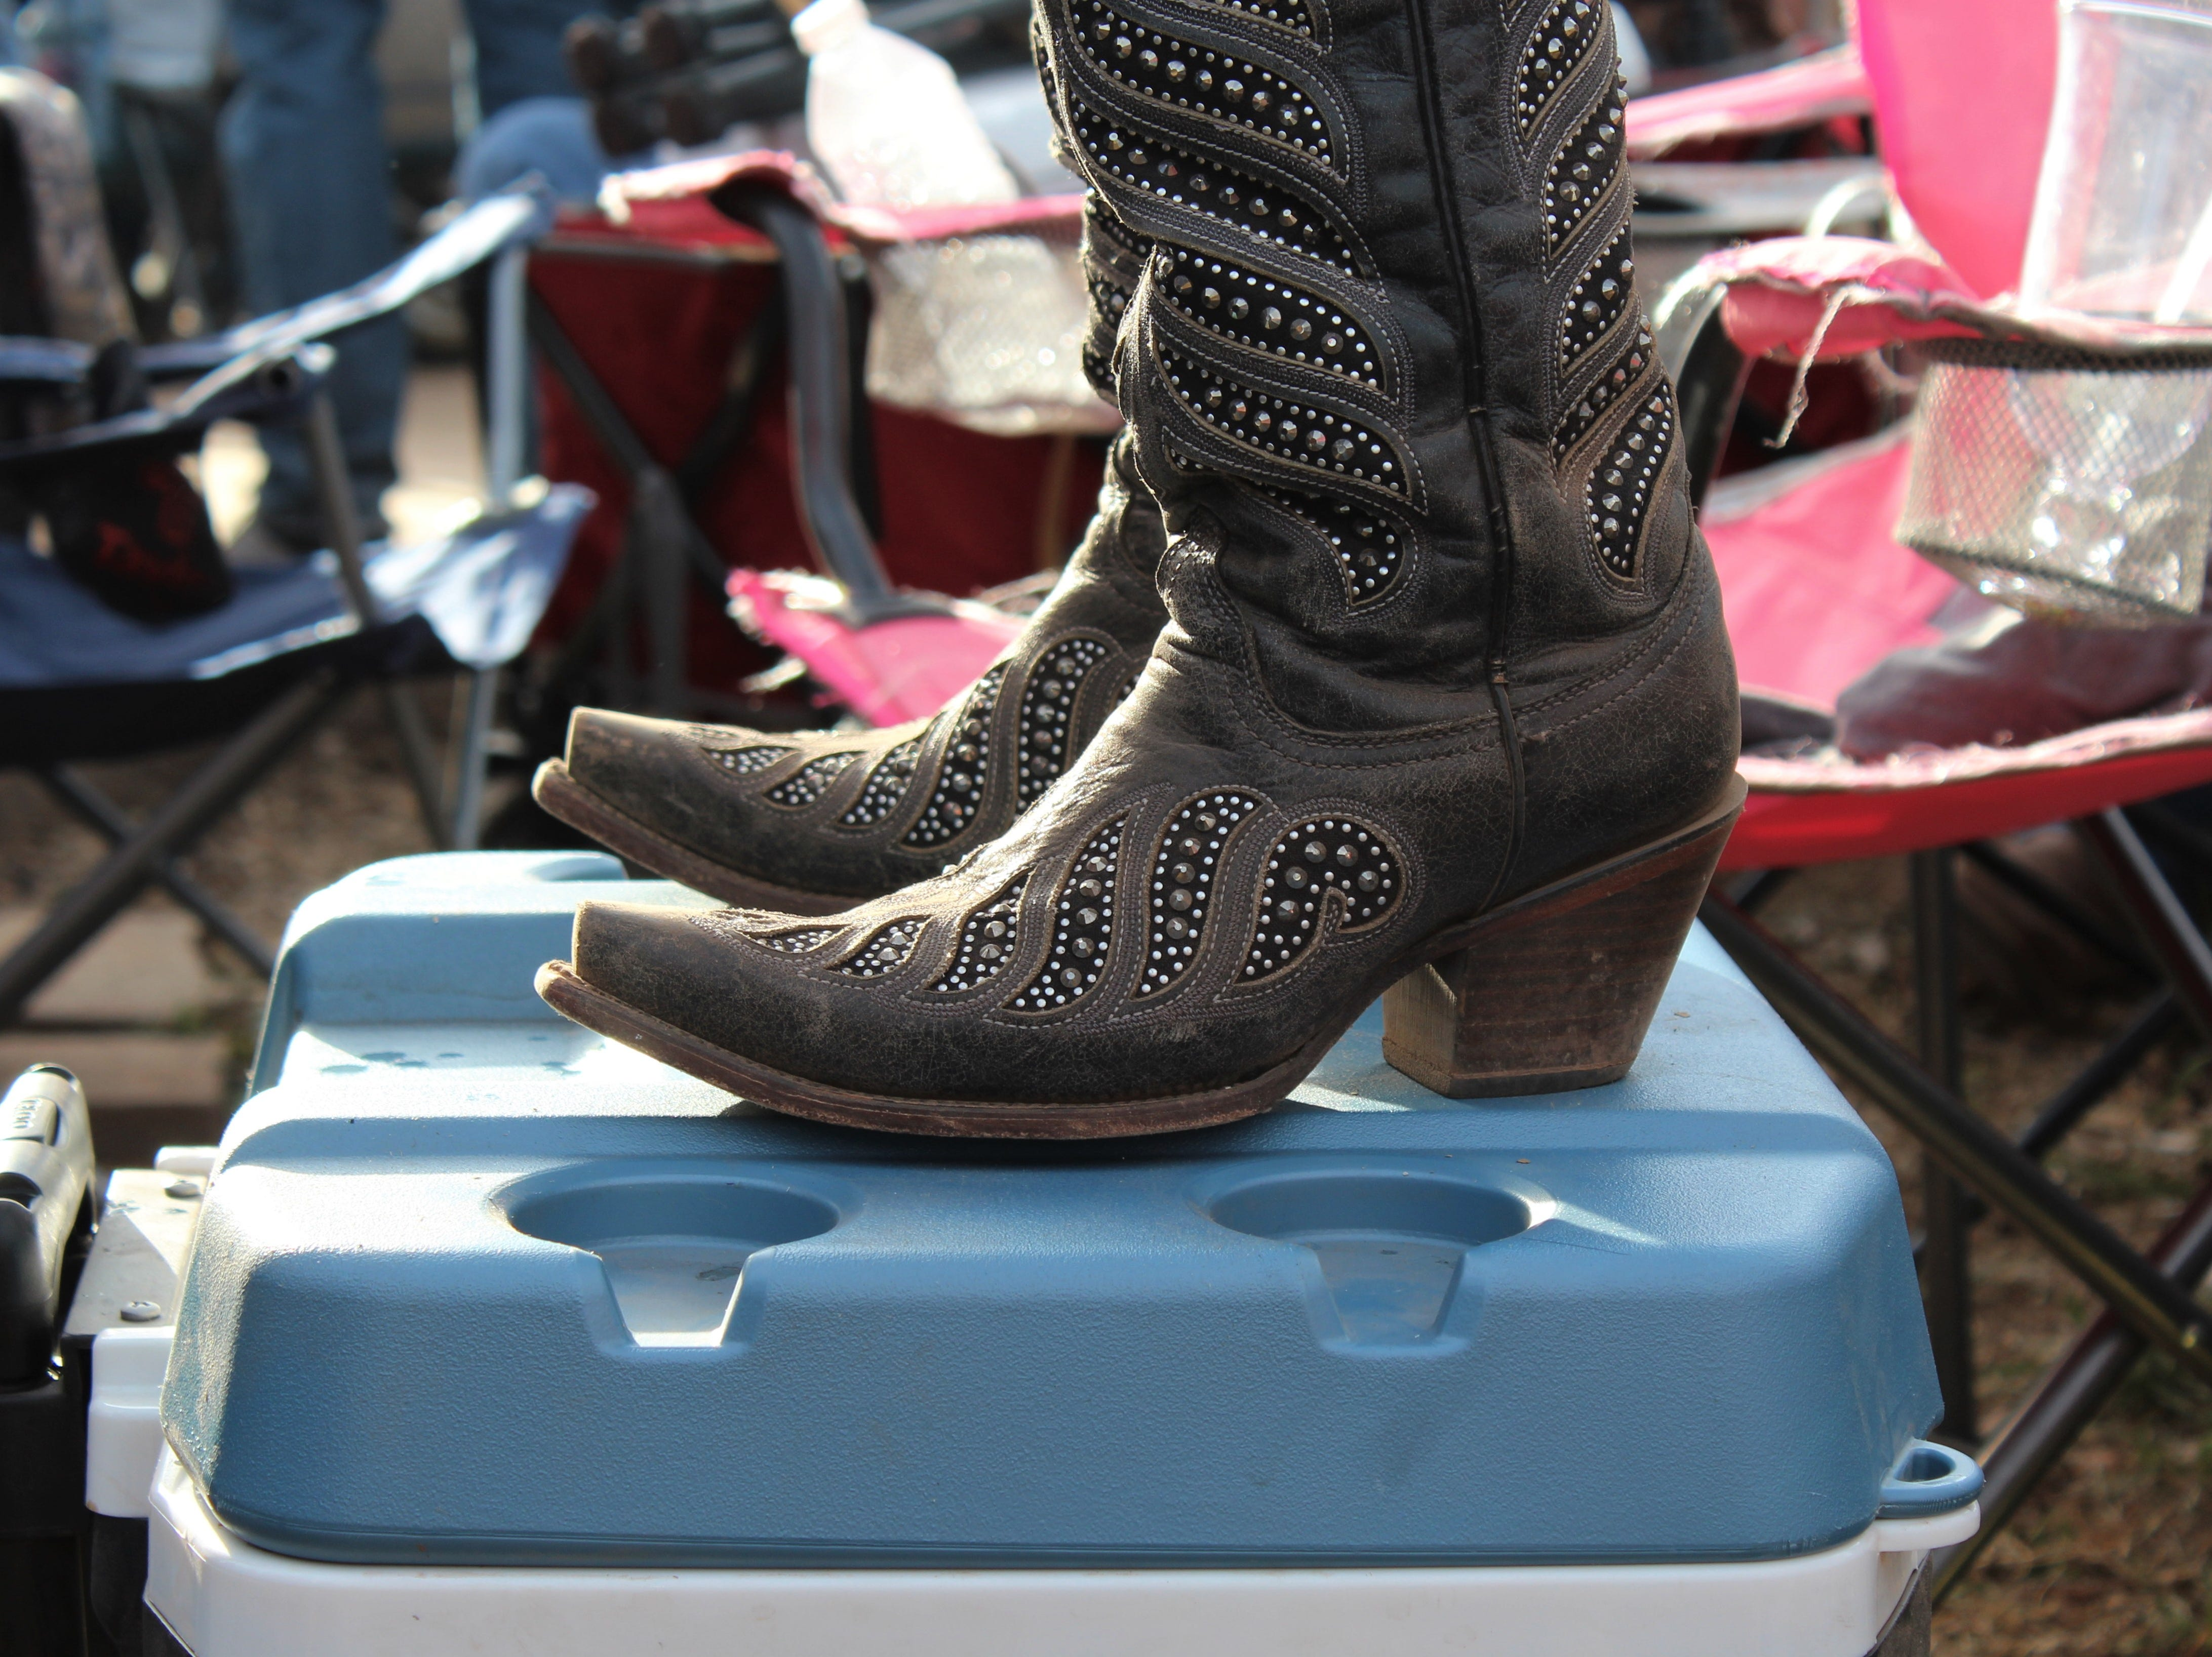 A music fan in boots gets a better look at the stage by standing on her cooler Saturday afternoon March 23, 2019, at the 9th Outlaws & Legends Music Festival.